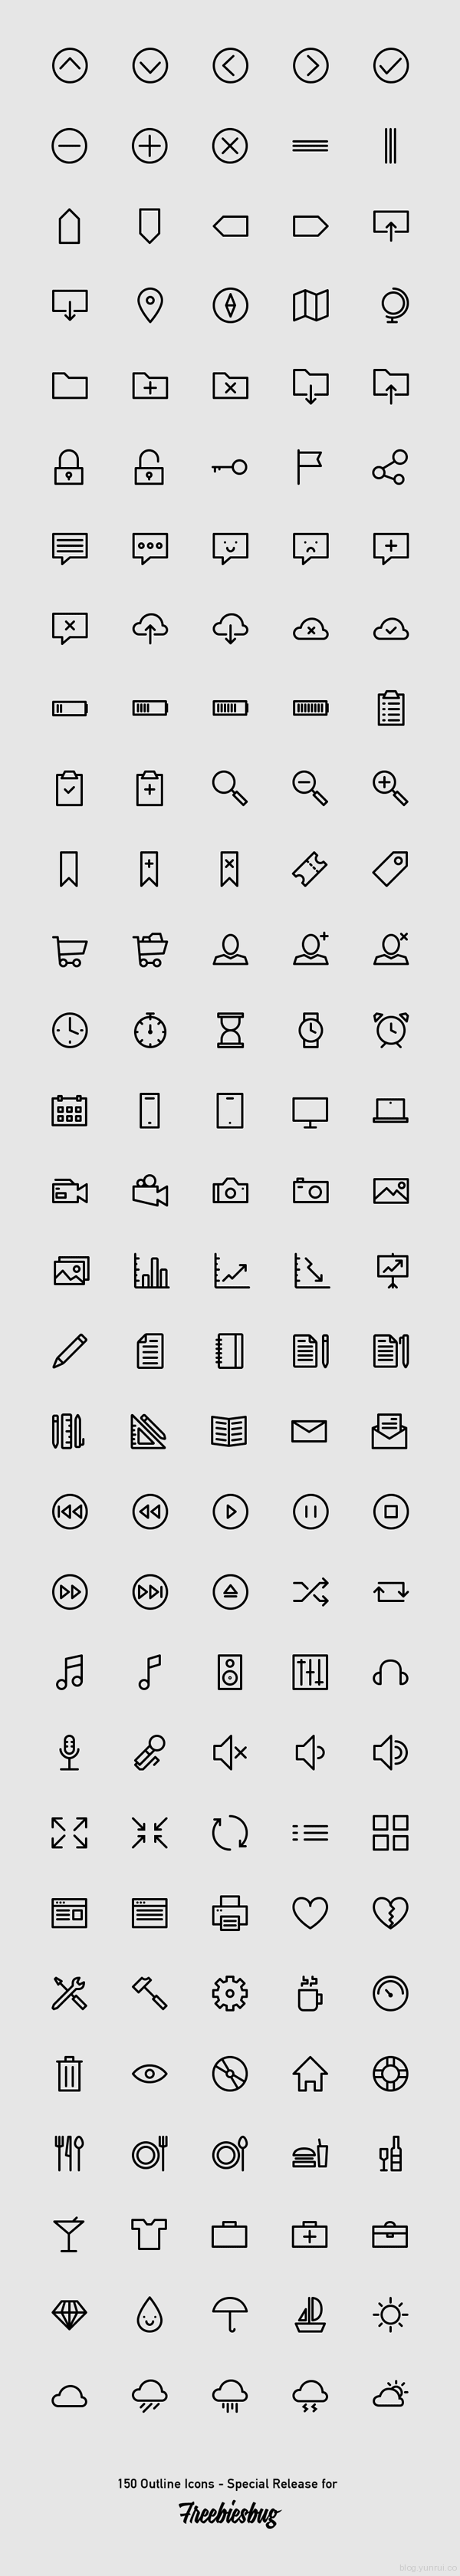 Outlined_Icons-600